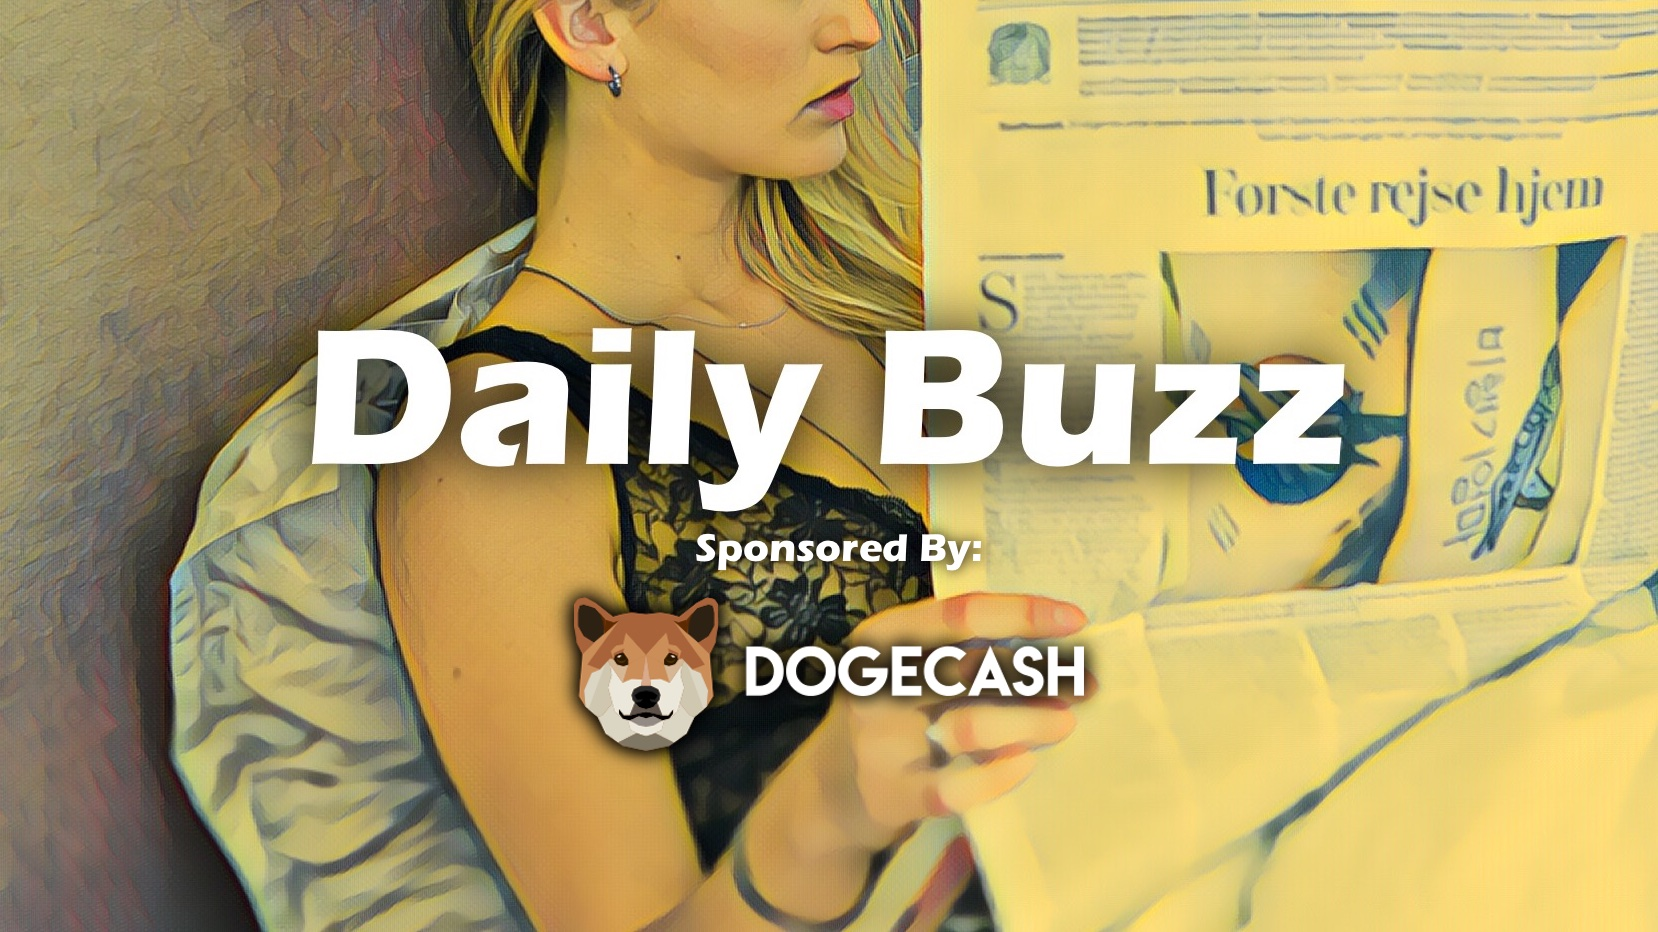 DailyBuzz Thursday 18 October 2018